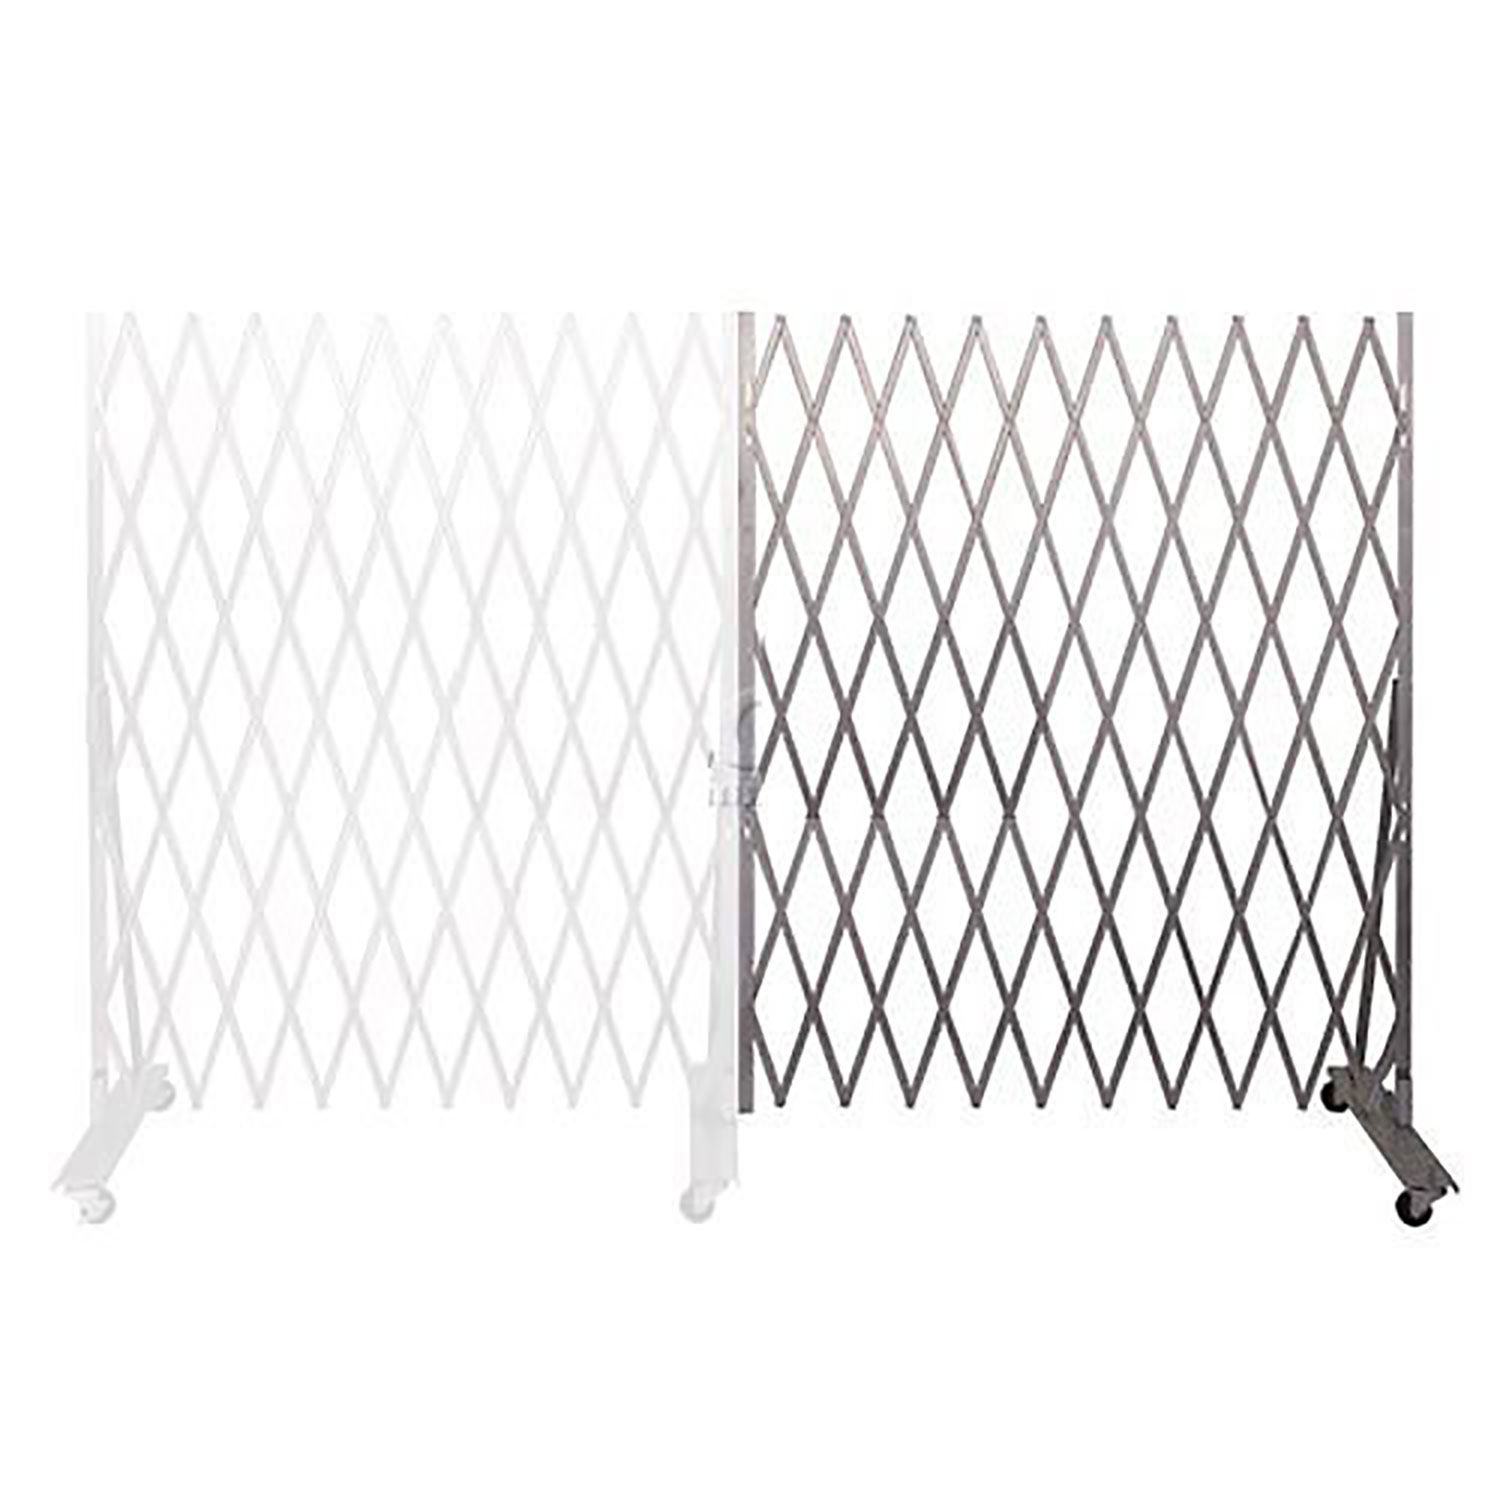 Mobile Folding Security Gate Add On 6 6 H X 6 W In Use